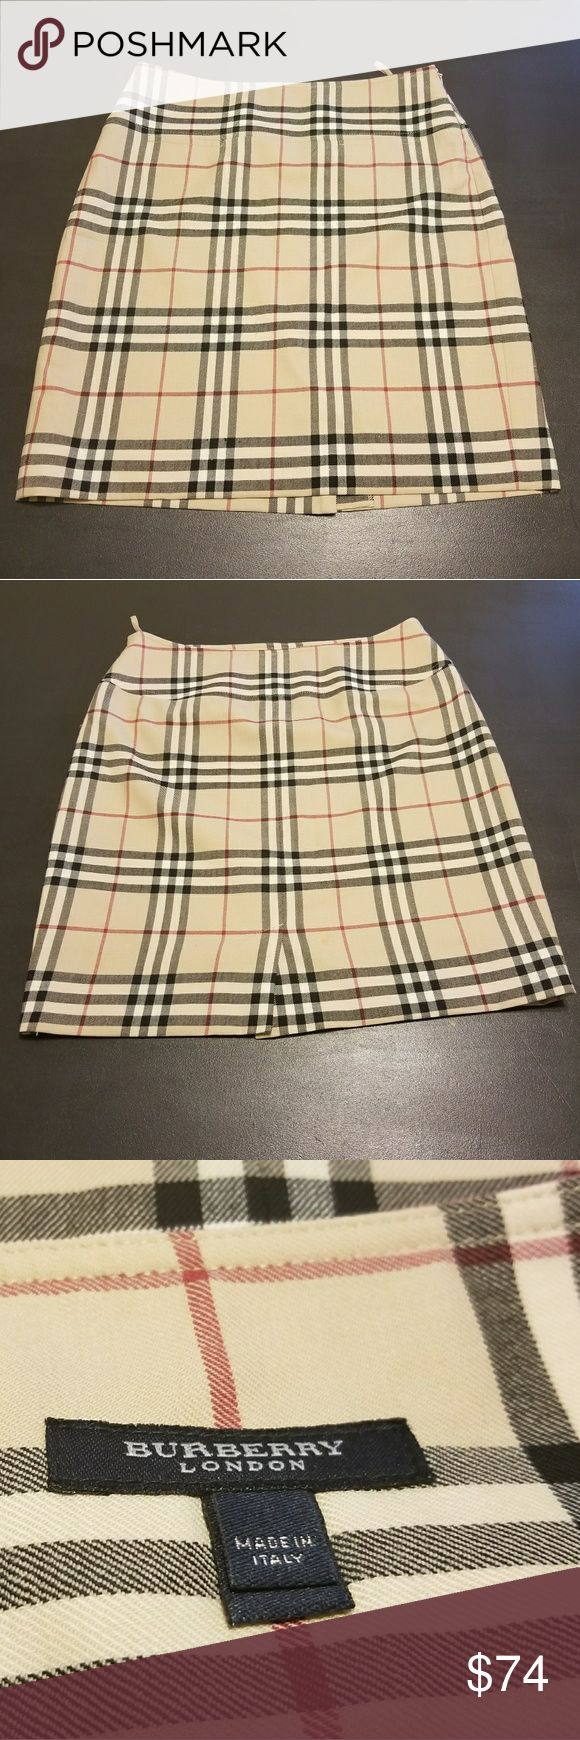 Burberry skirt Stylish Burberry skirt. Versatile piece. Good condition, with some very miniscule snags. Burberry Skirts Midi